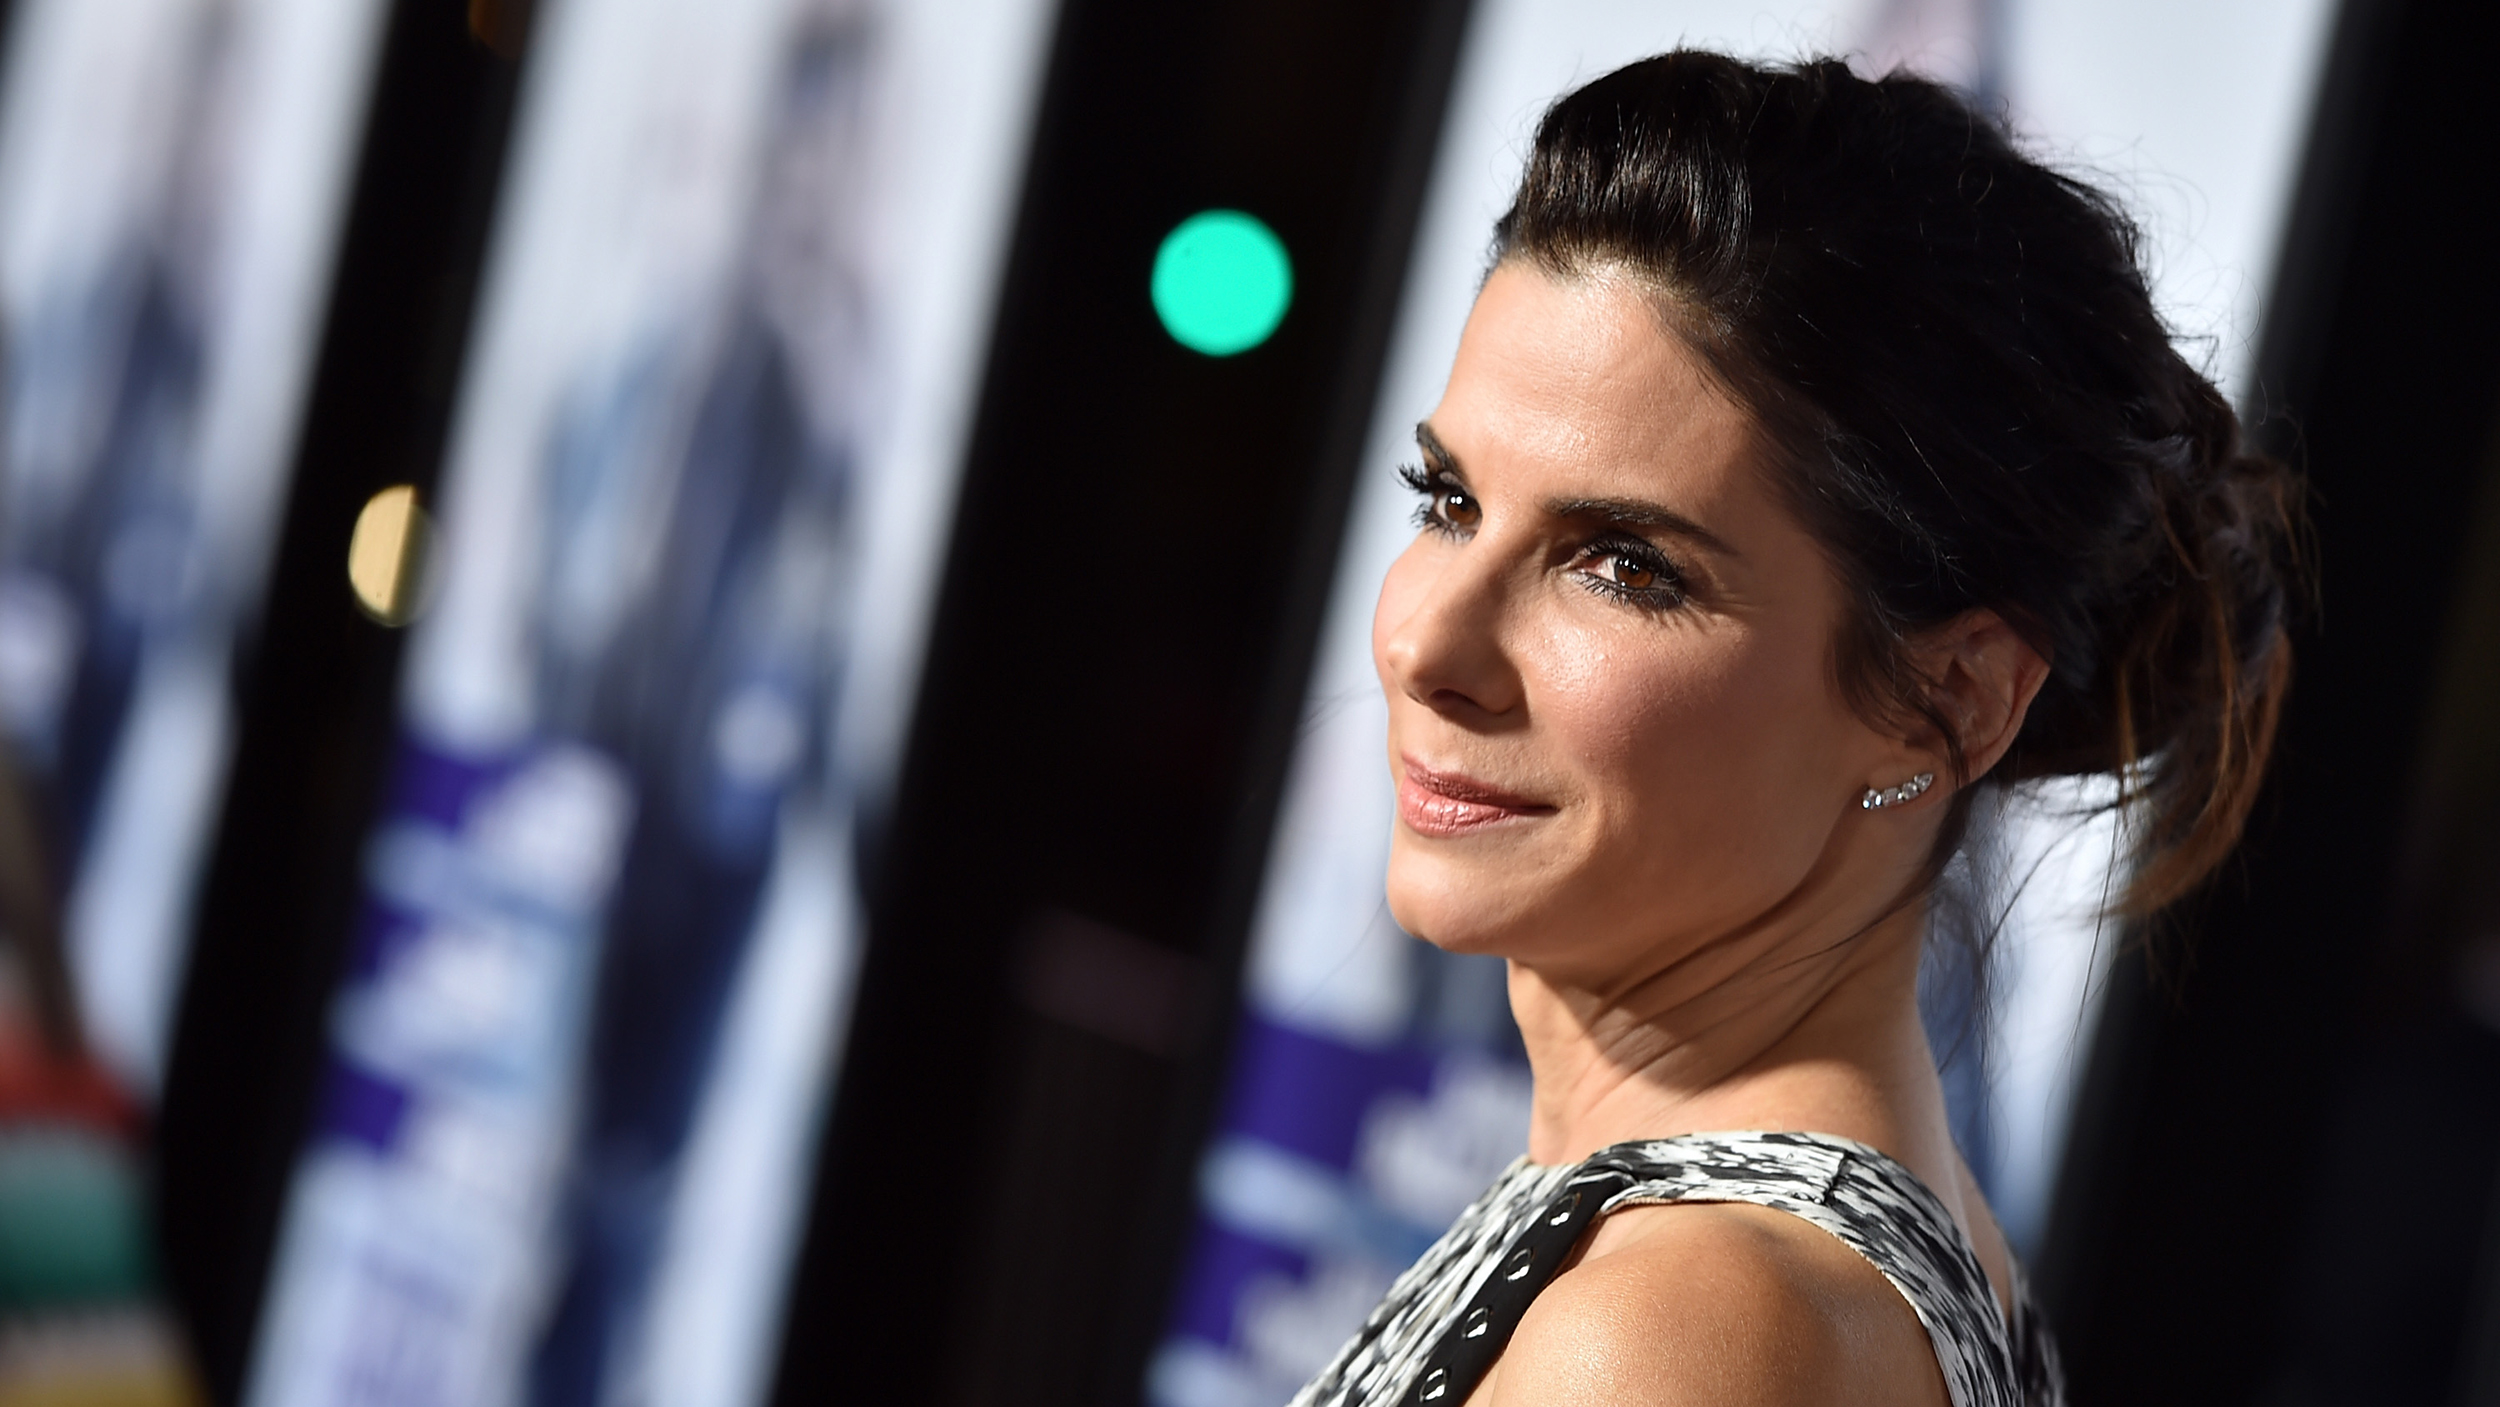 Who is hookup sandra bullock now